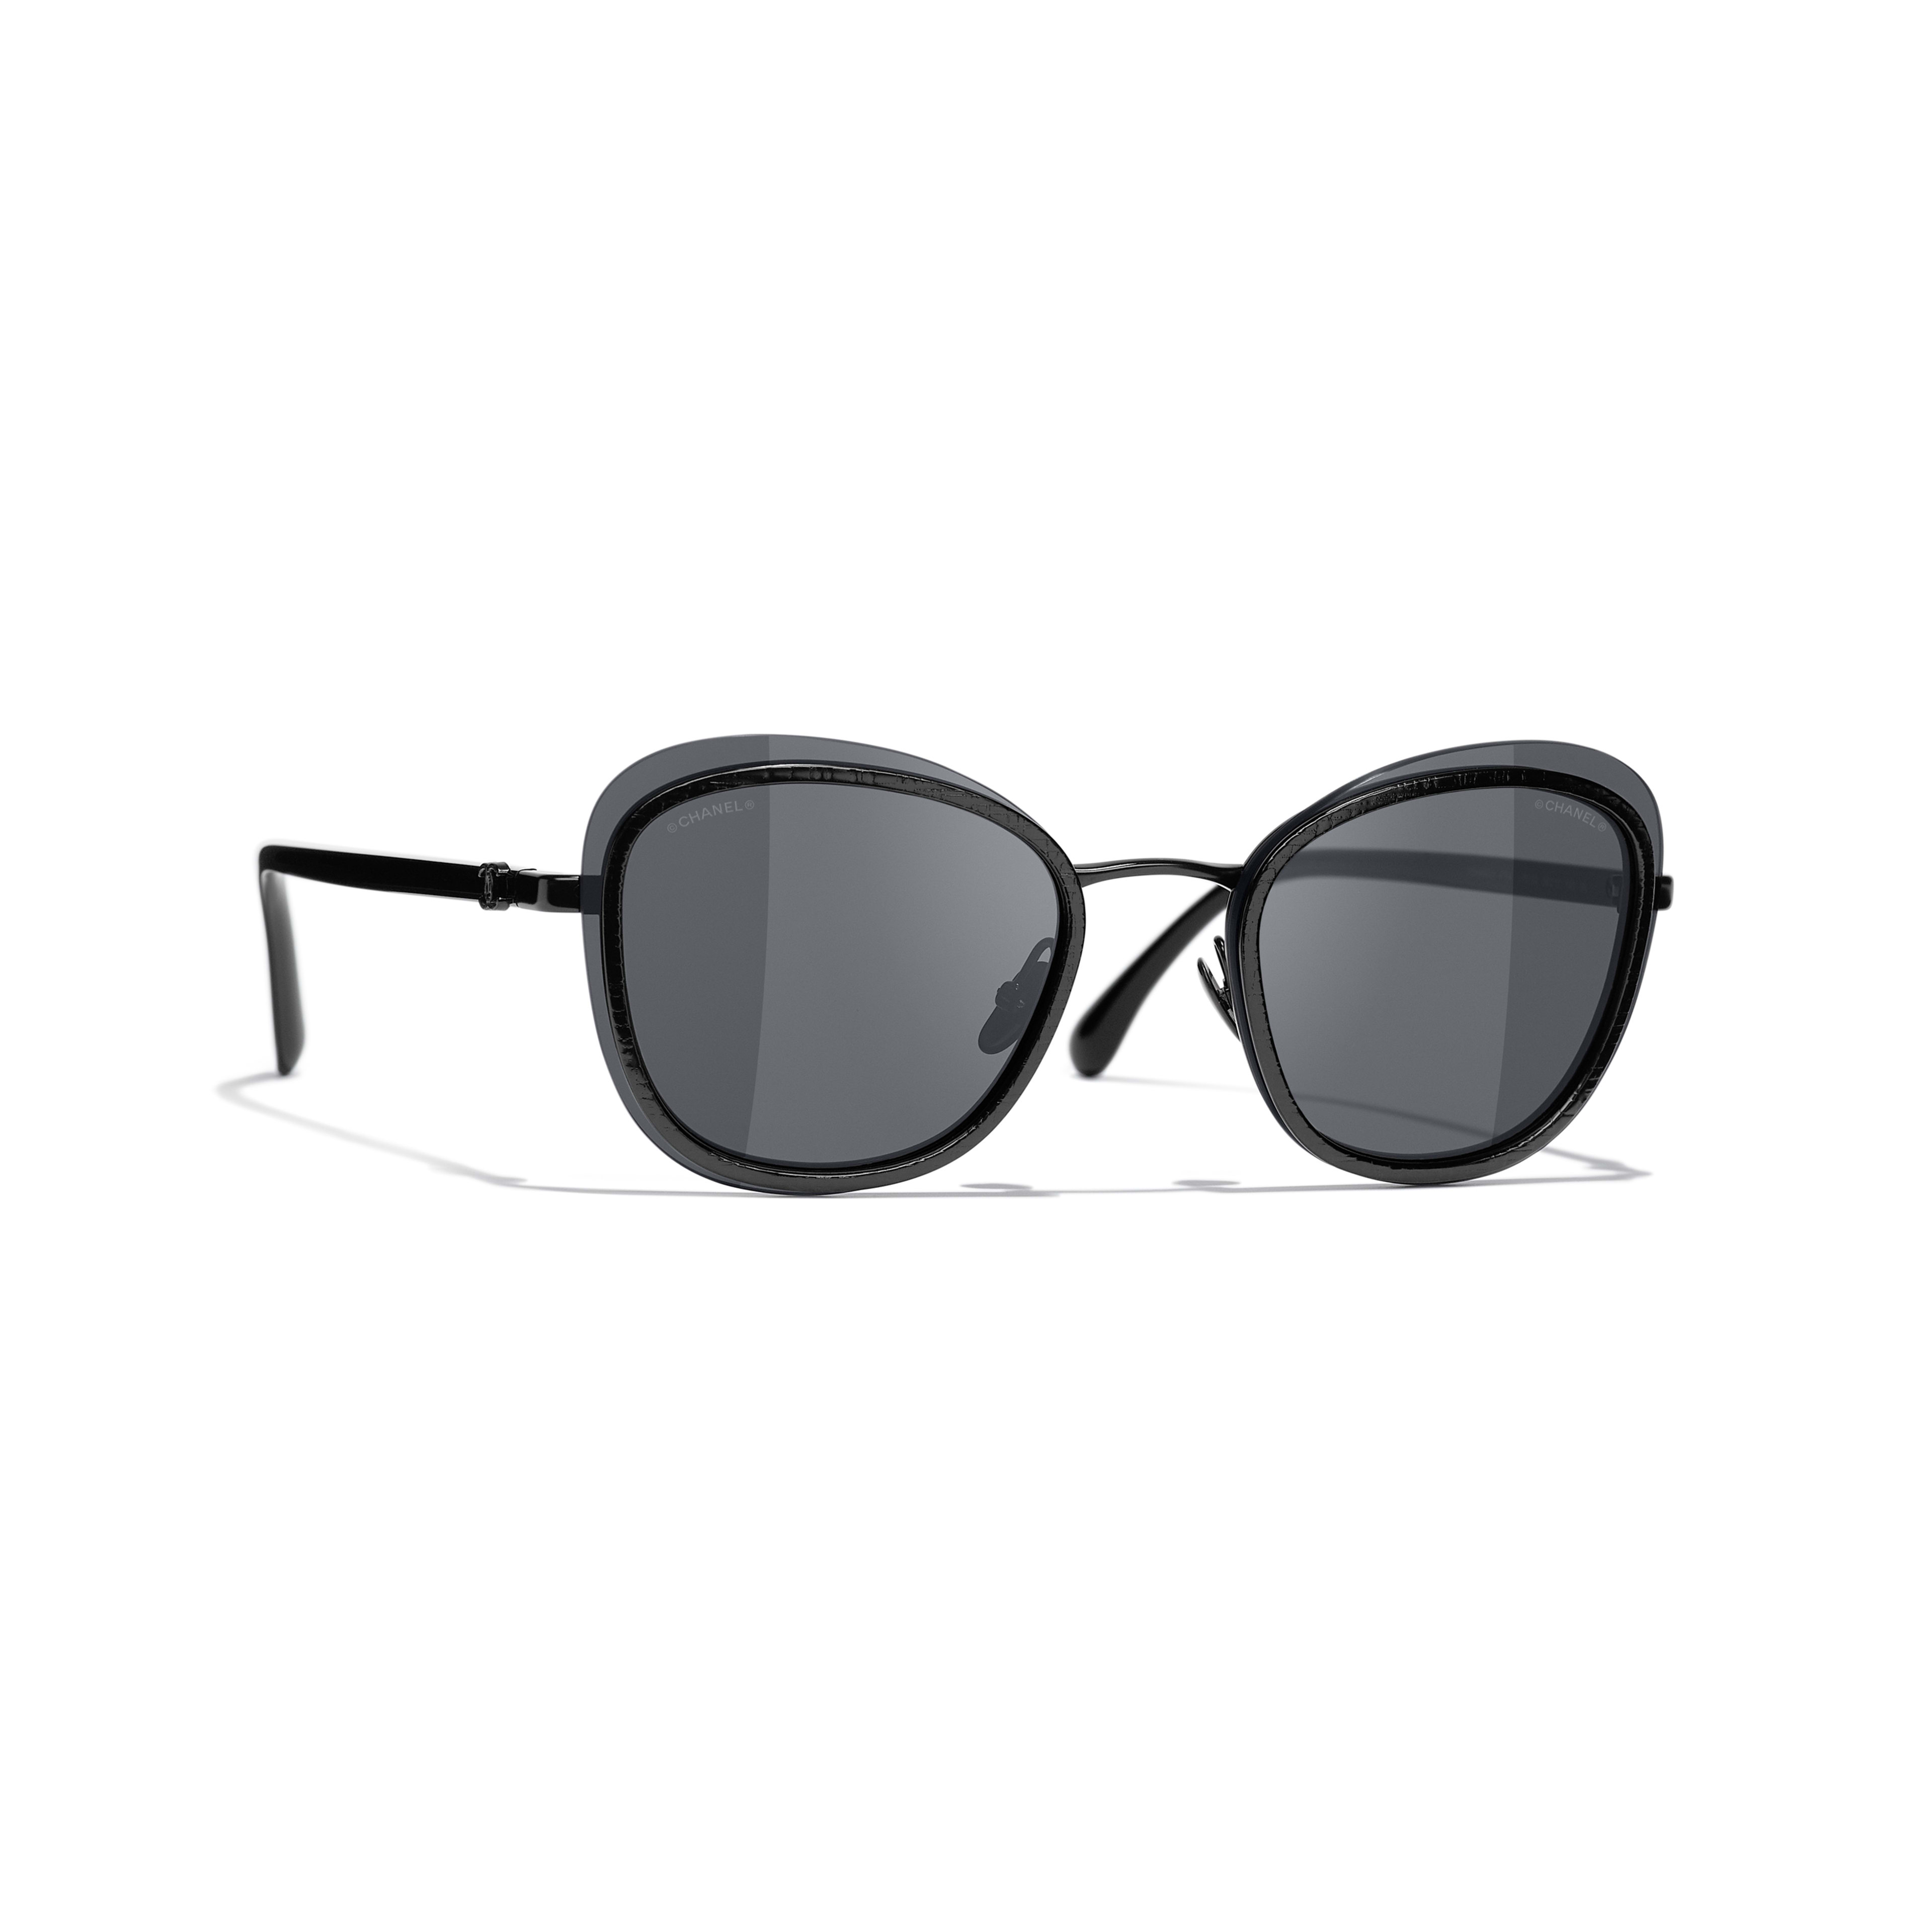 Pantos Sunglasses - Black - Acetate & Metal - CHANEL - Default view - see standard sized version